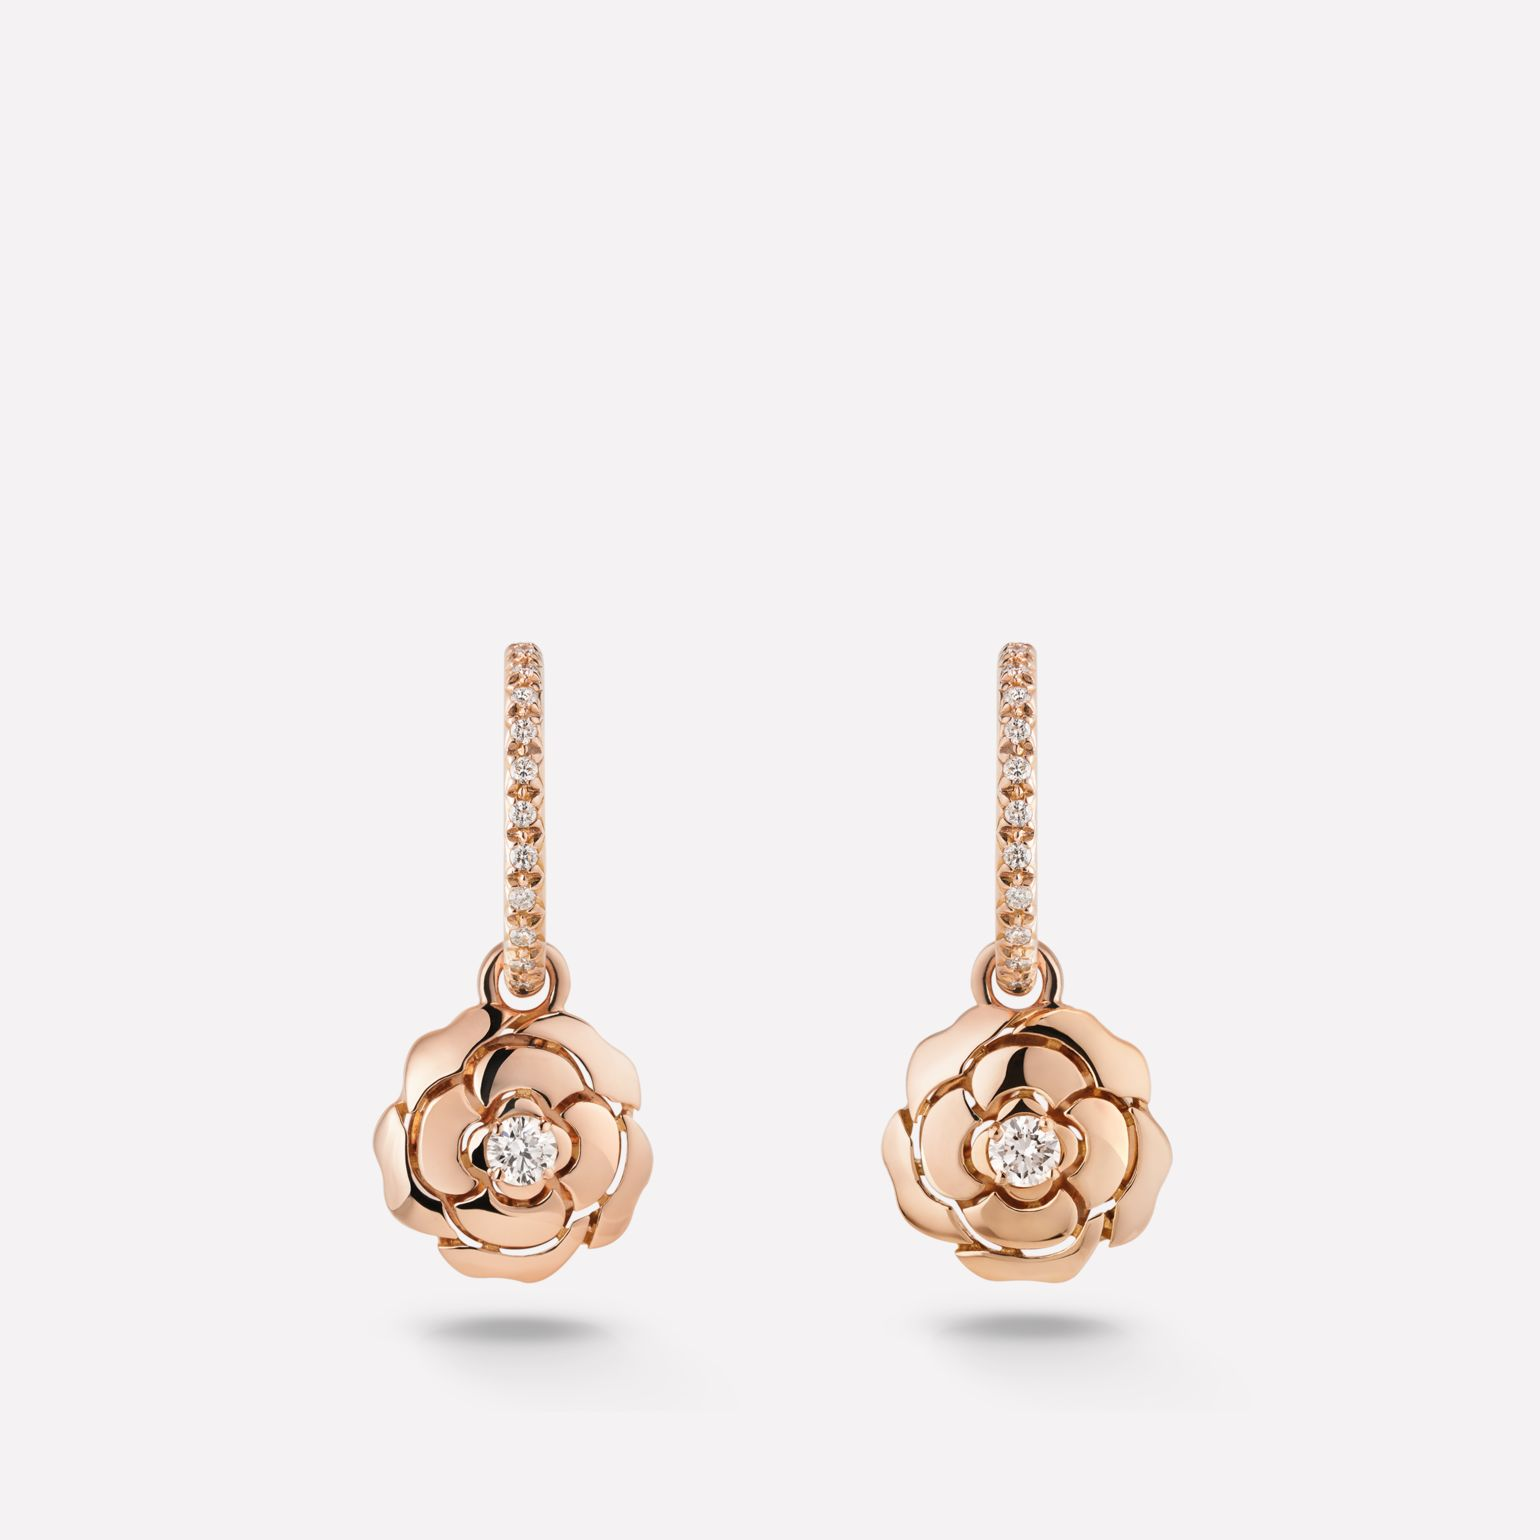 Extrait de Camélia earrings 18K pink gold, diamonds